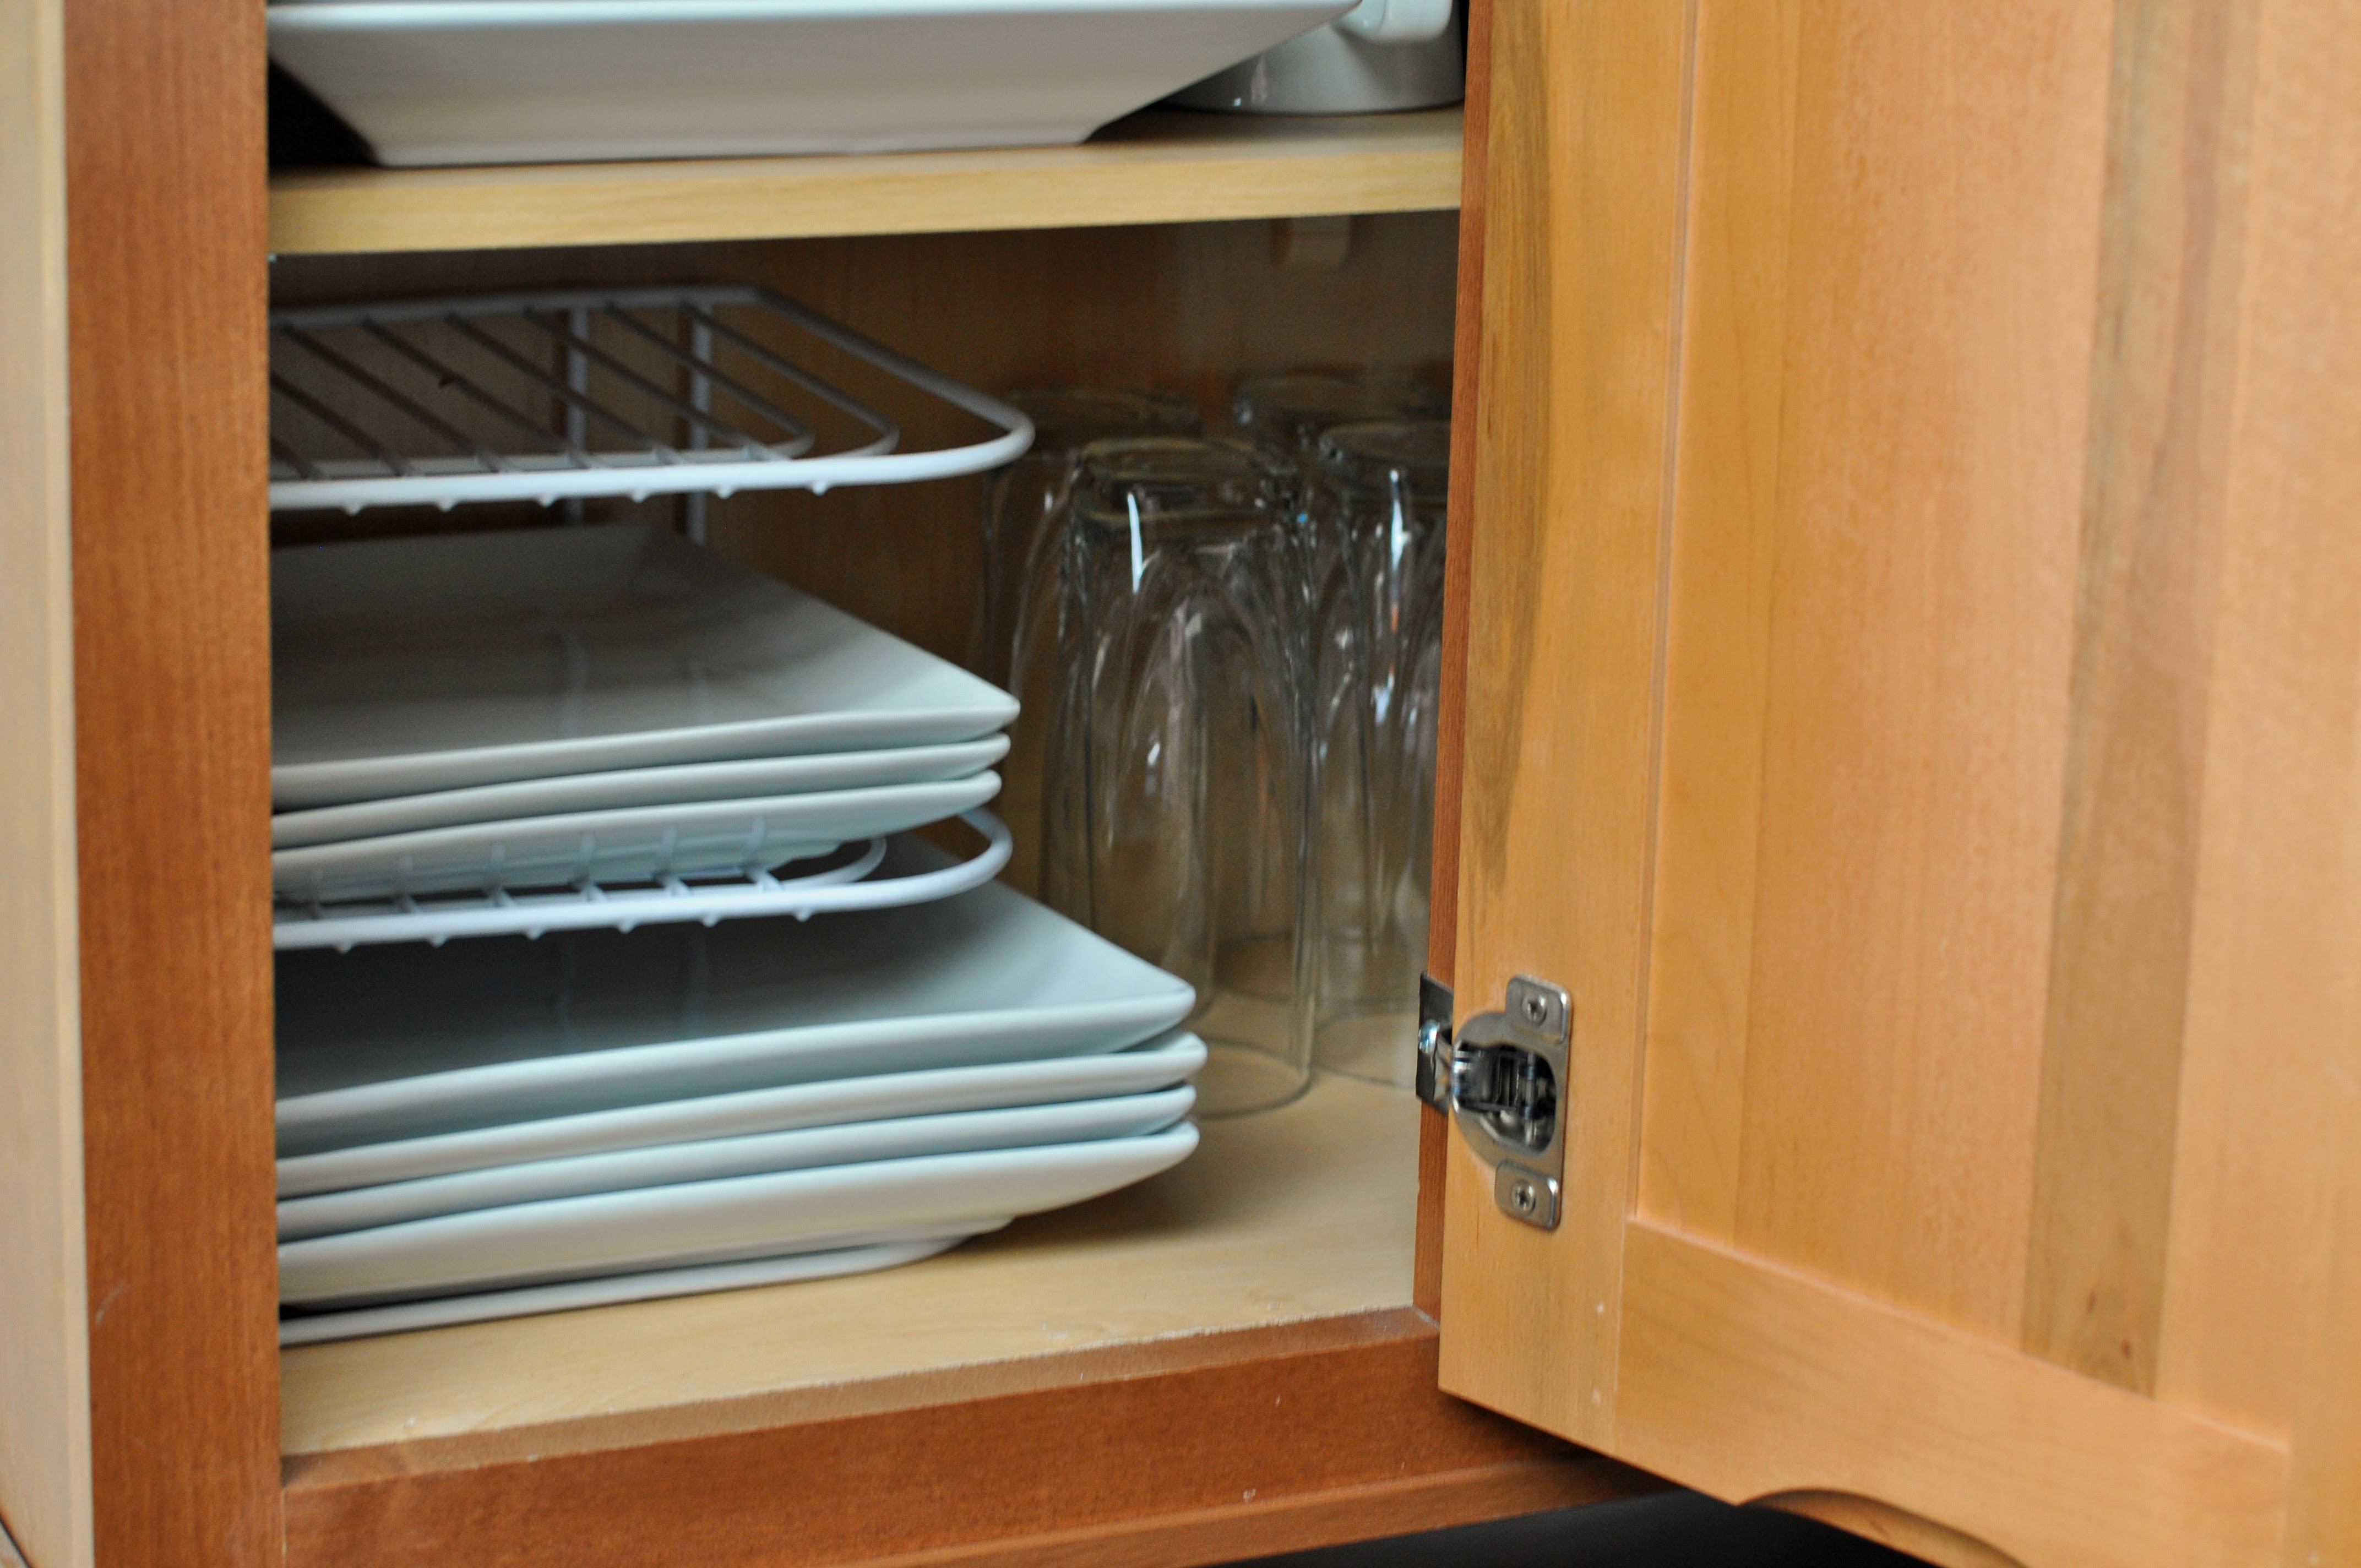 Adding a Decorative Touch To The Cabinets With Duck Brand ...